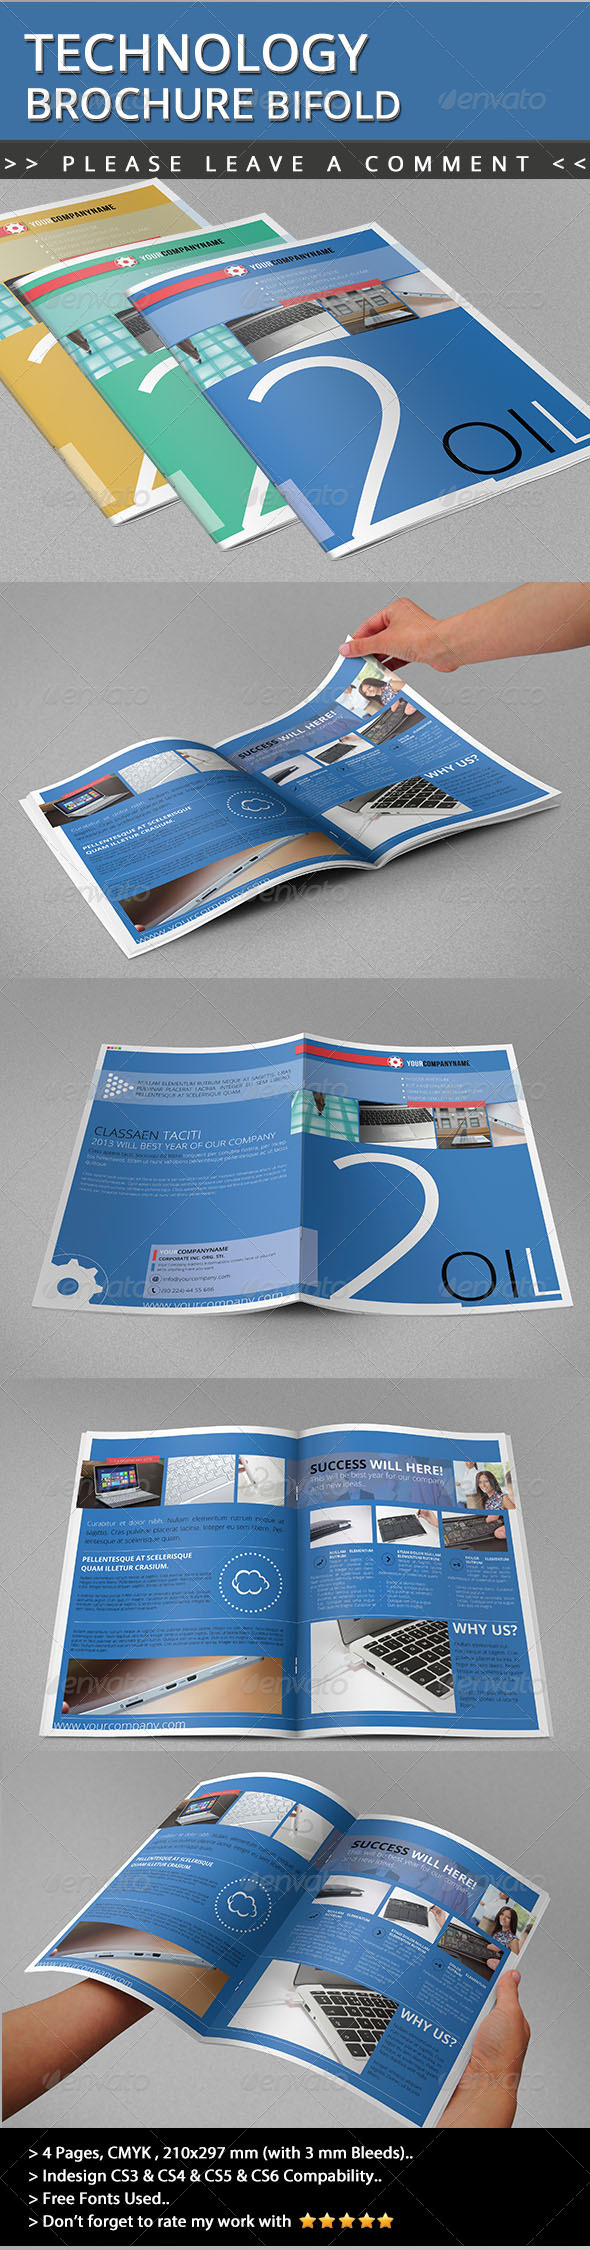 GraphicRiver Technology Brochure Bifold 4814933